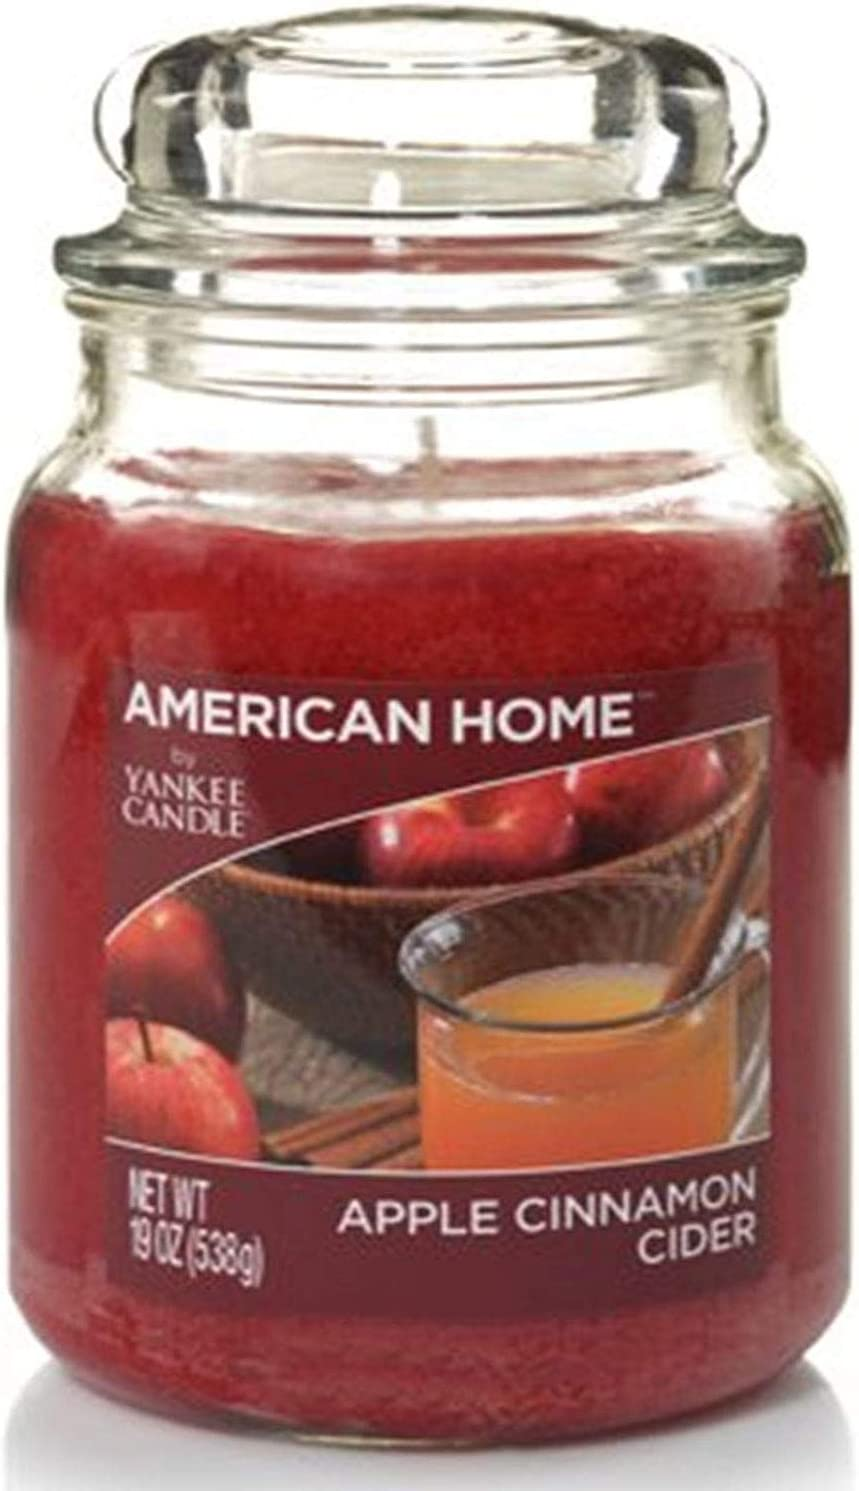 YANKEE CANDLE 241292 Scented Fragrance Candles American Home Collection Luxury Classic Large 19oz Glass Jar 538g[Apple Cinnamon Cider], Youth 11-13, Red